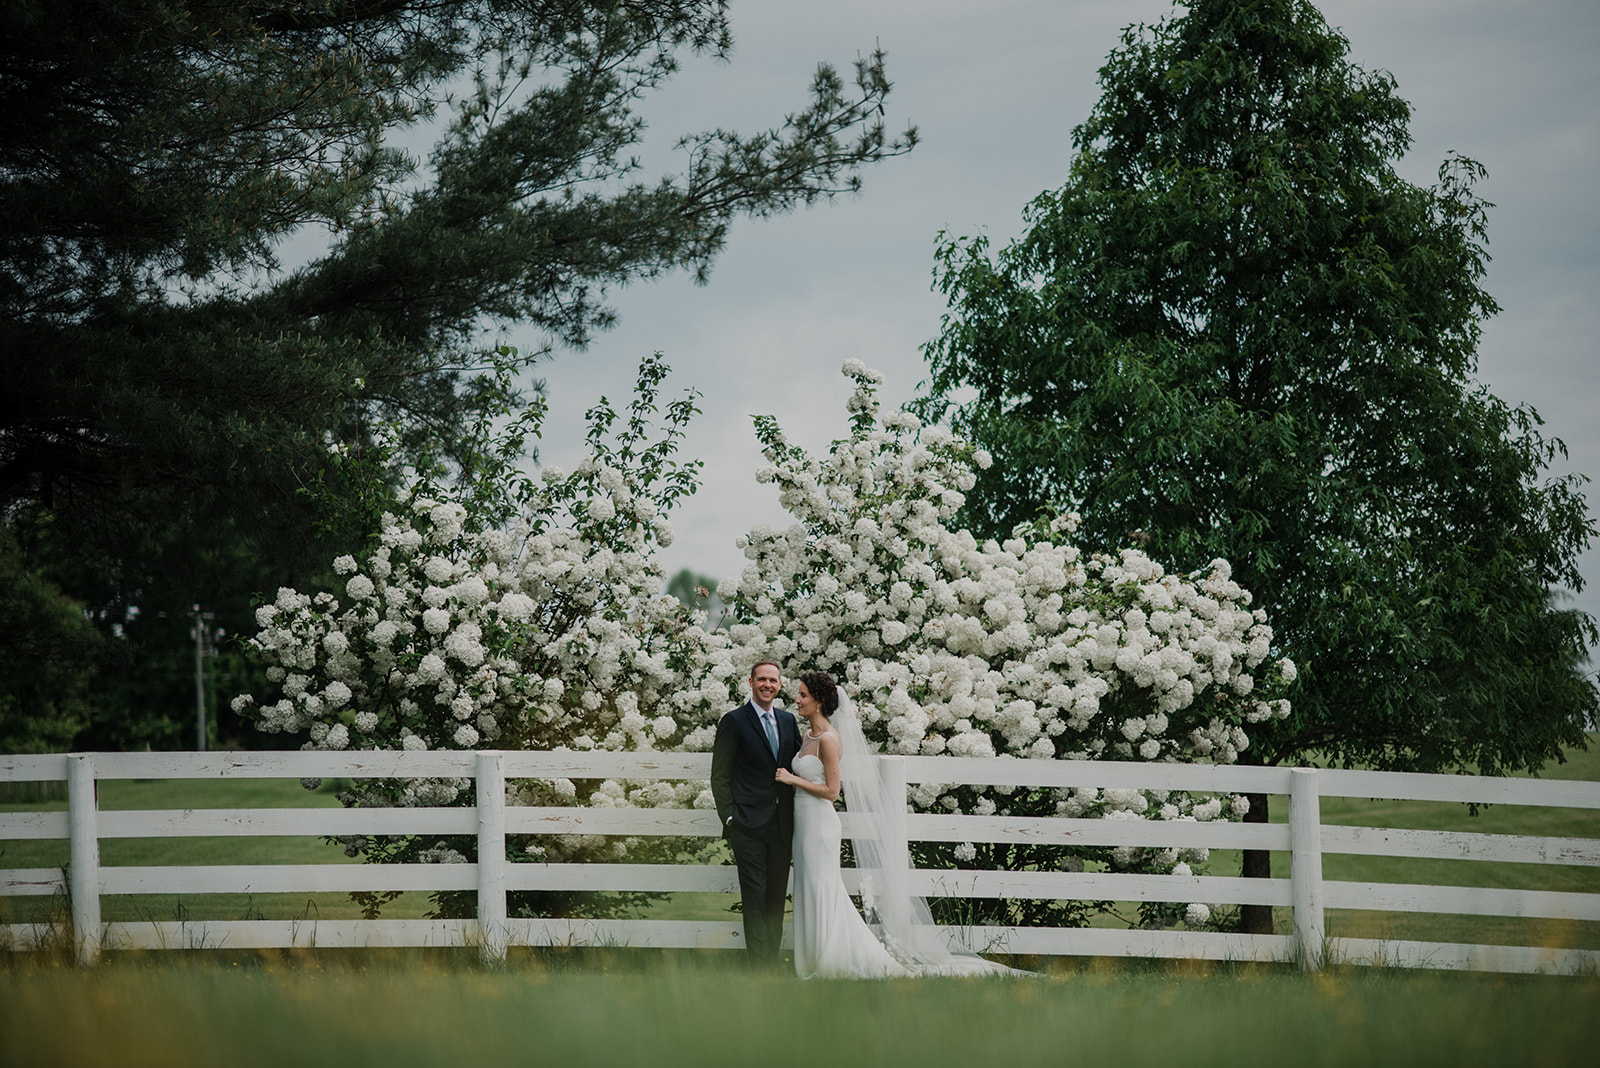 A bride and groom stand in front of a large flowering bush before their outdoor ceremony at Blue Hill Farm in Waterford, VA.